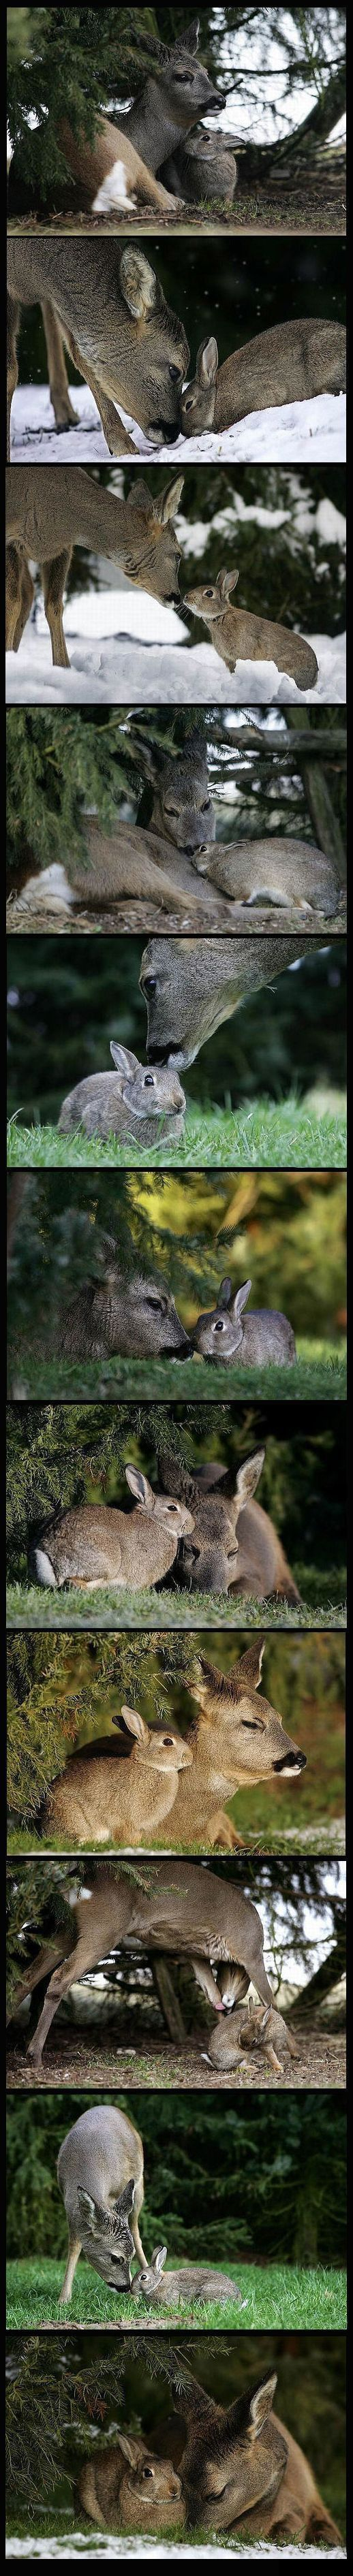 It's like bambi and thumper!